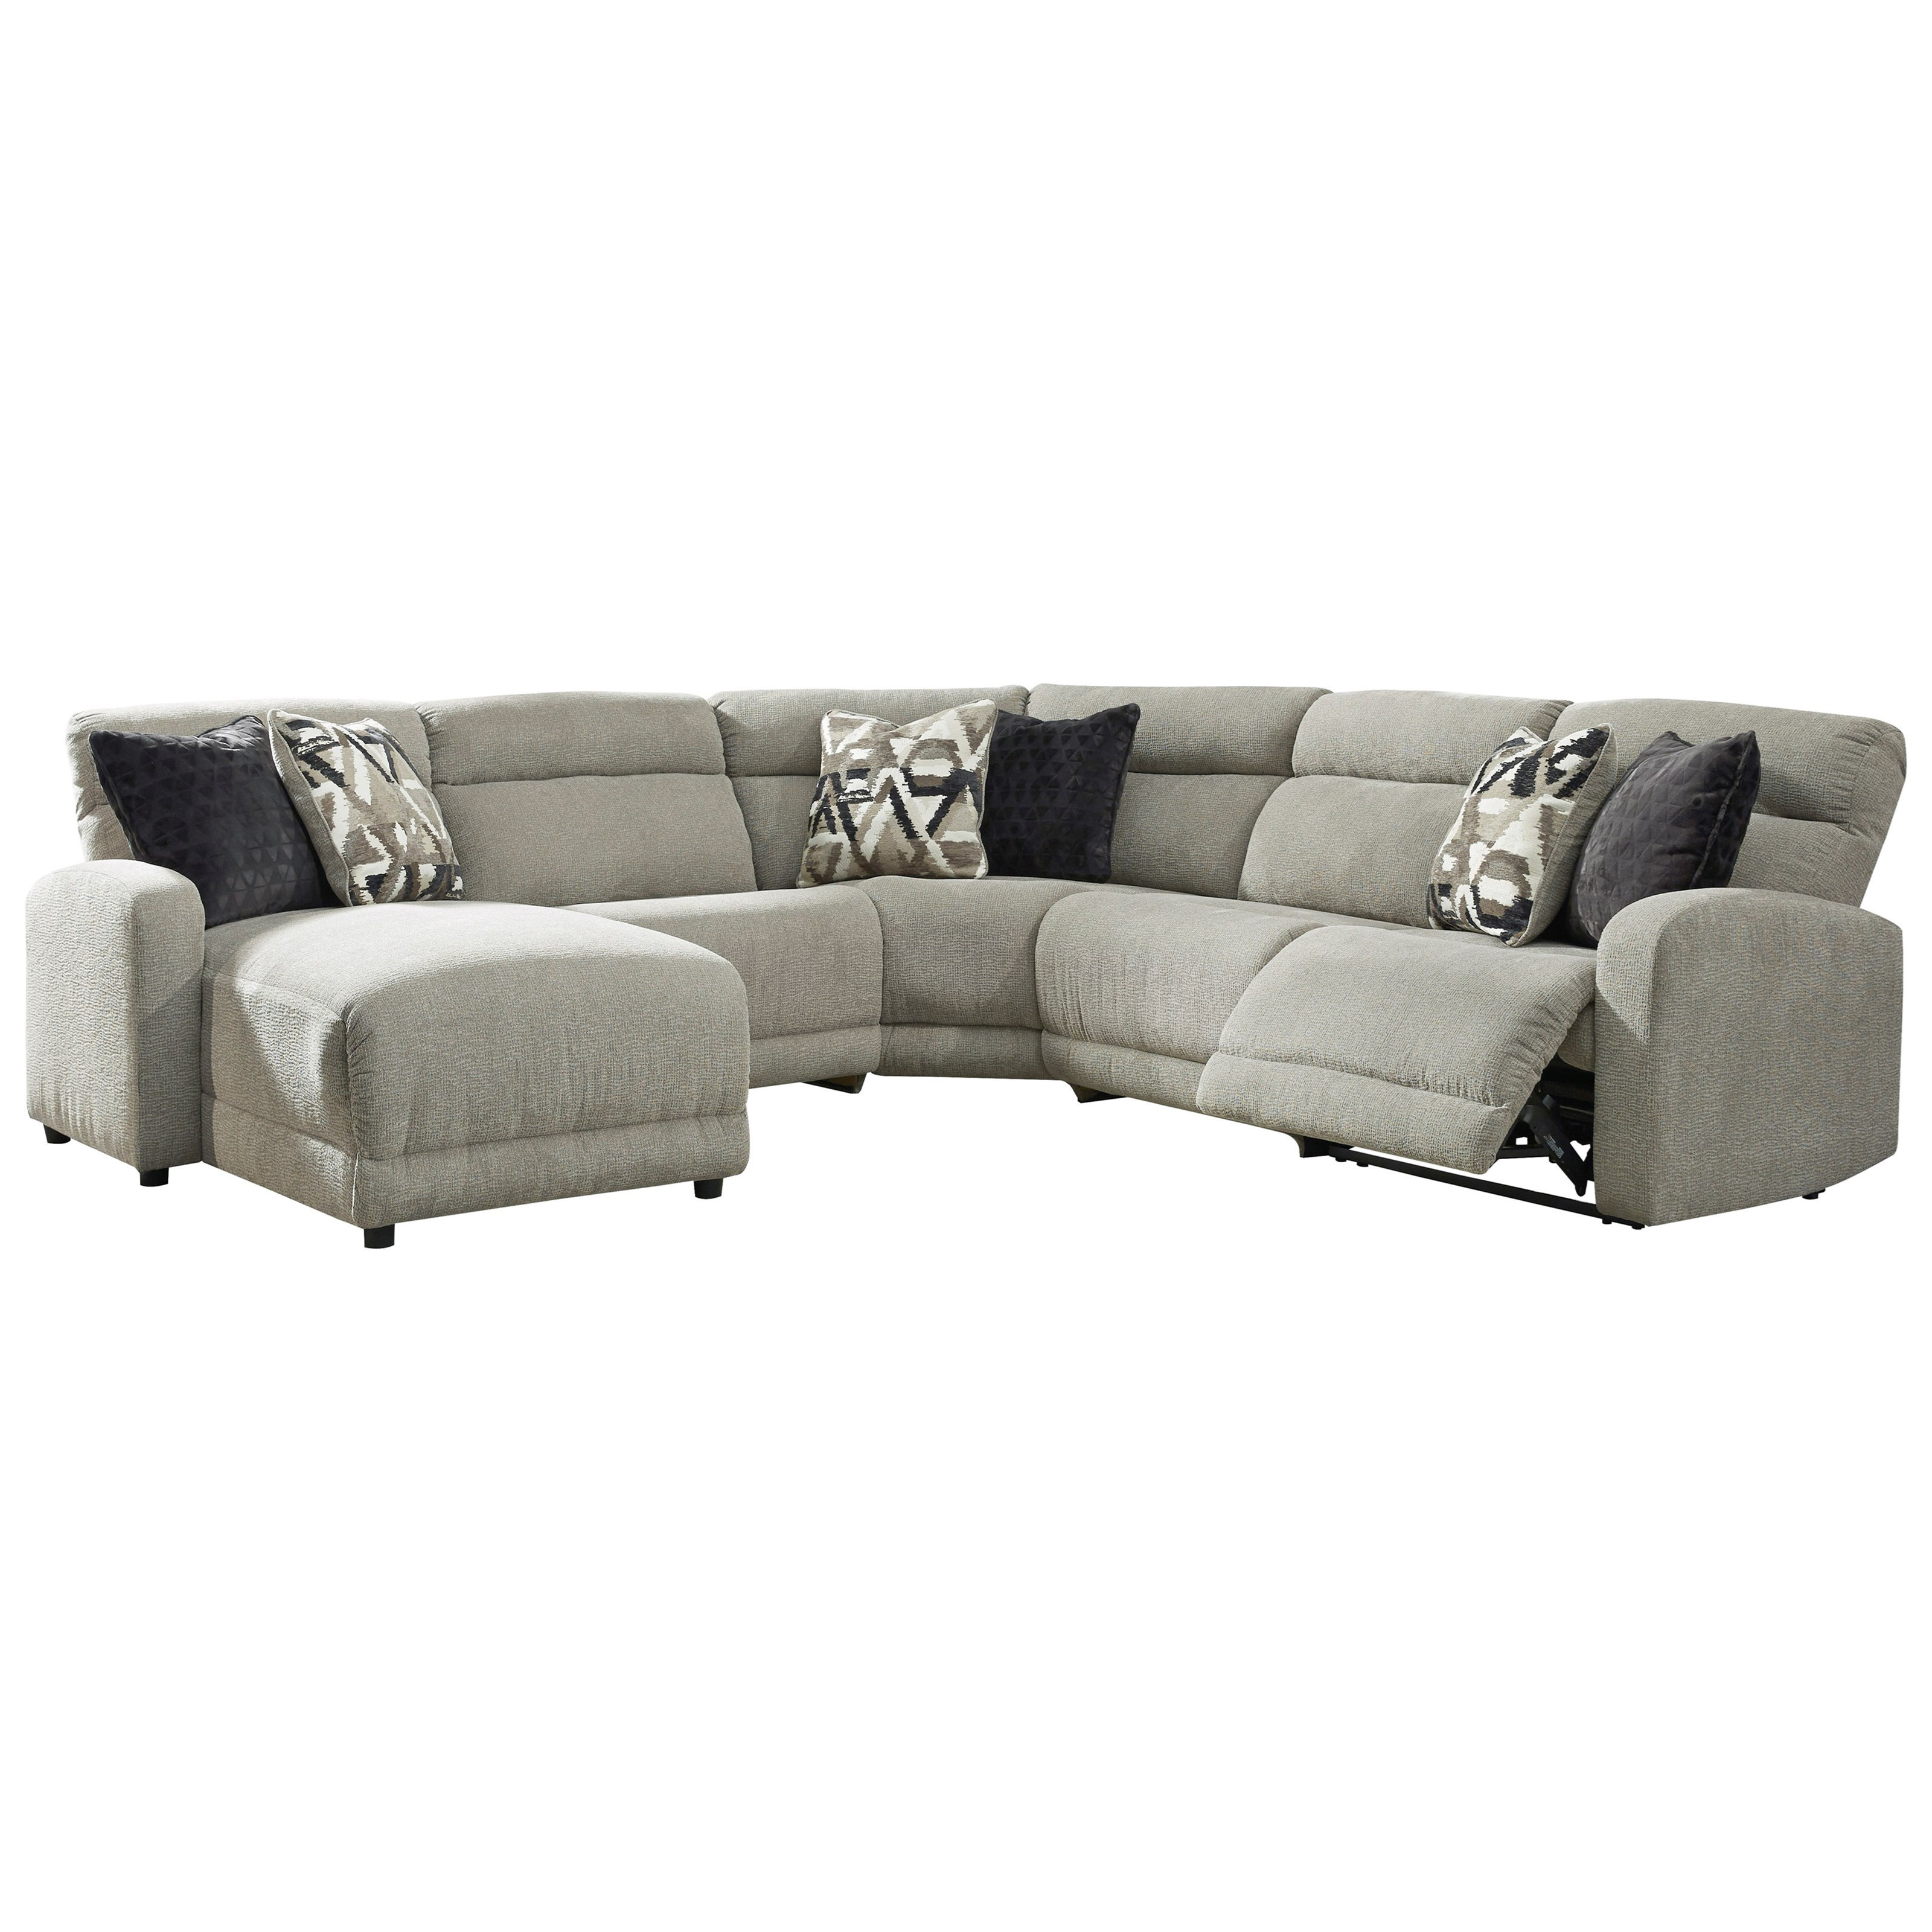 Colleyville Power Reclining Sectional by Ashley (Signature Design) at Johnny Janosik